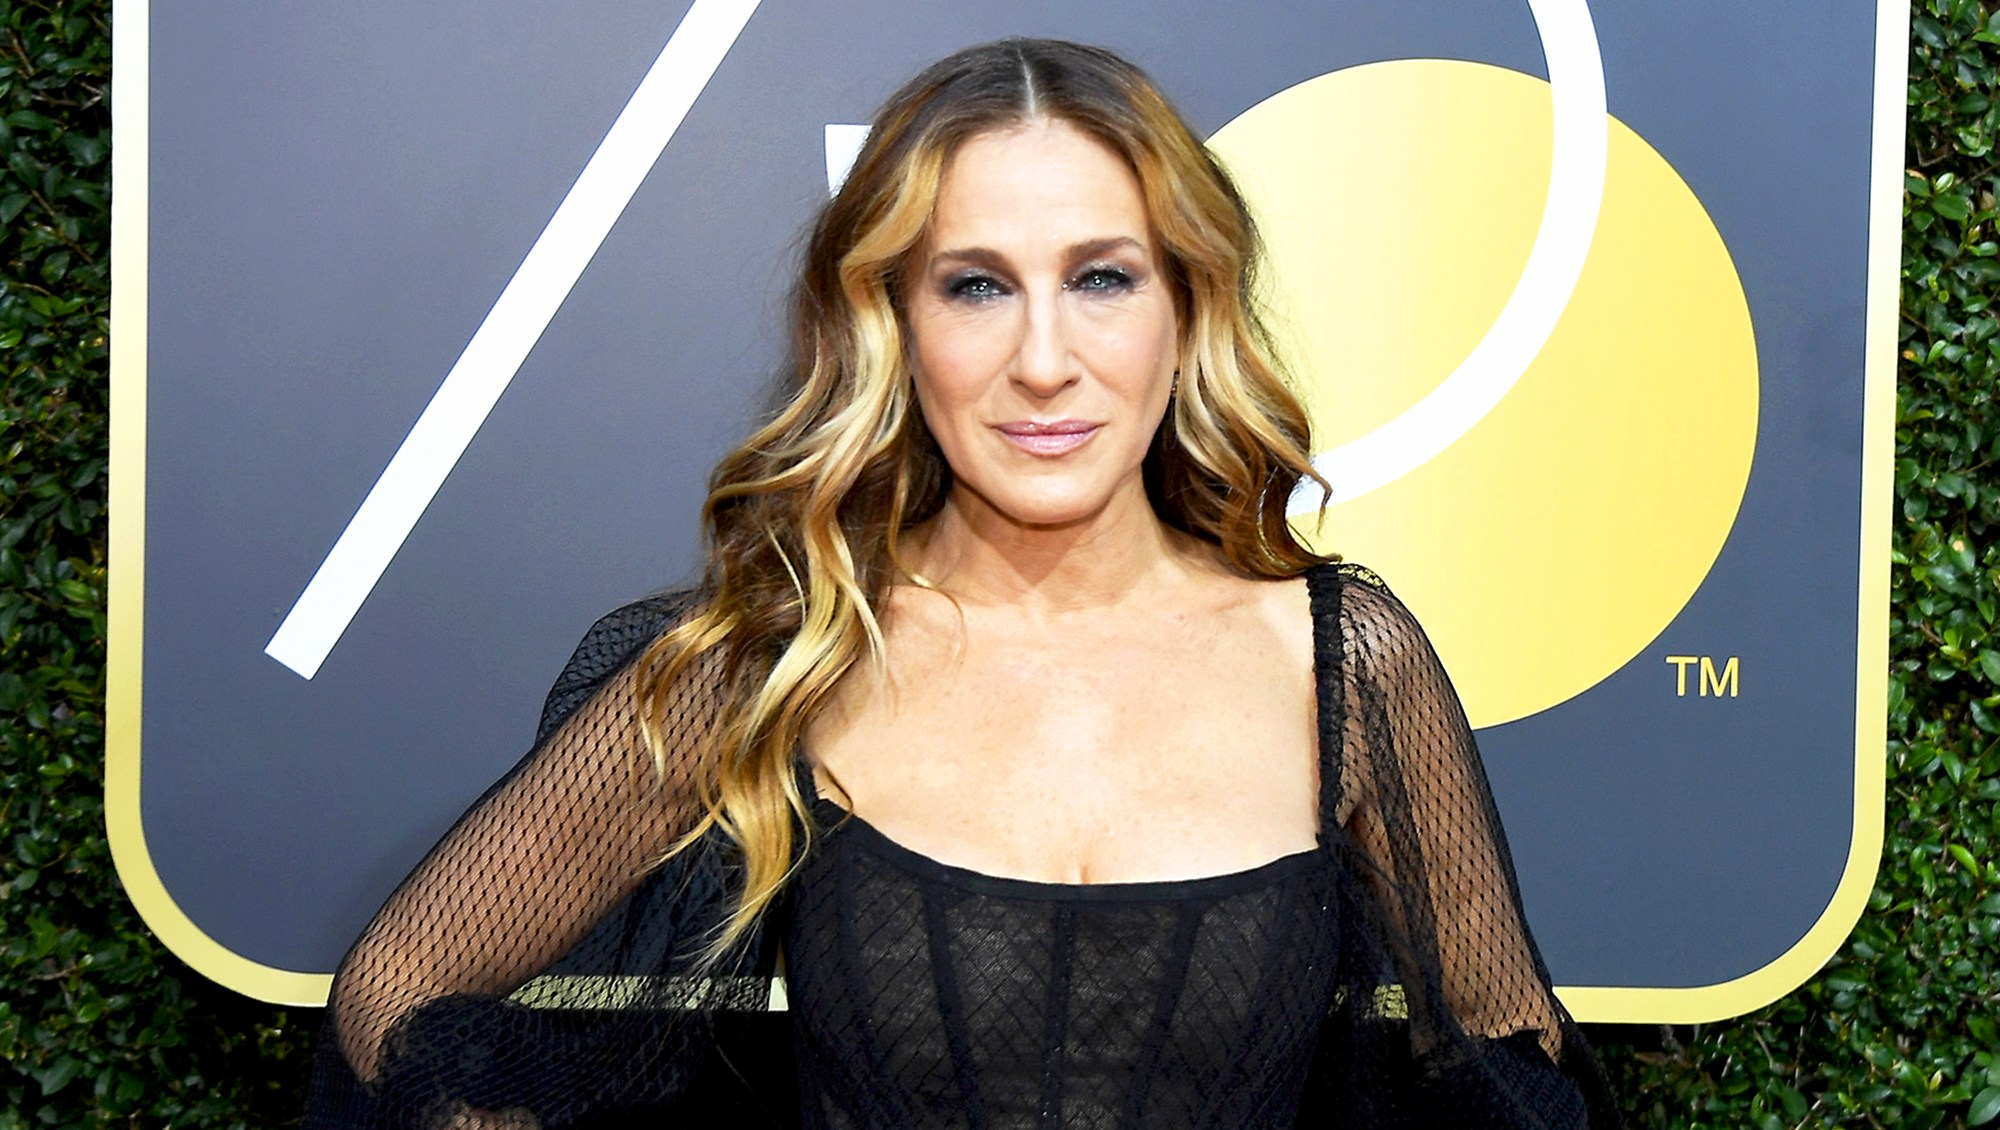 Sarah Jessica Parker arrives to the 75th Annual Golden Globe Awards held at the Beverly Hilton Hotel on January 7, 2018.